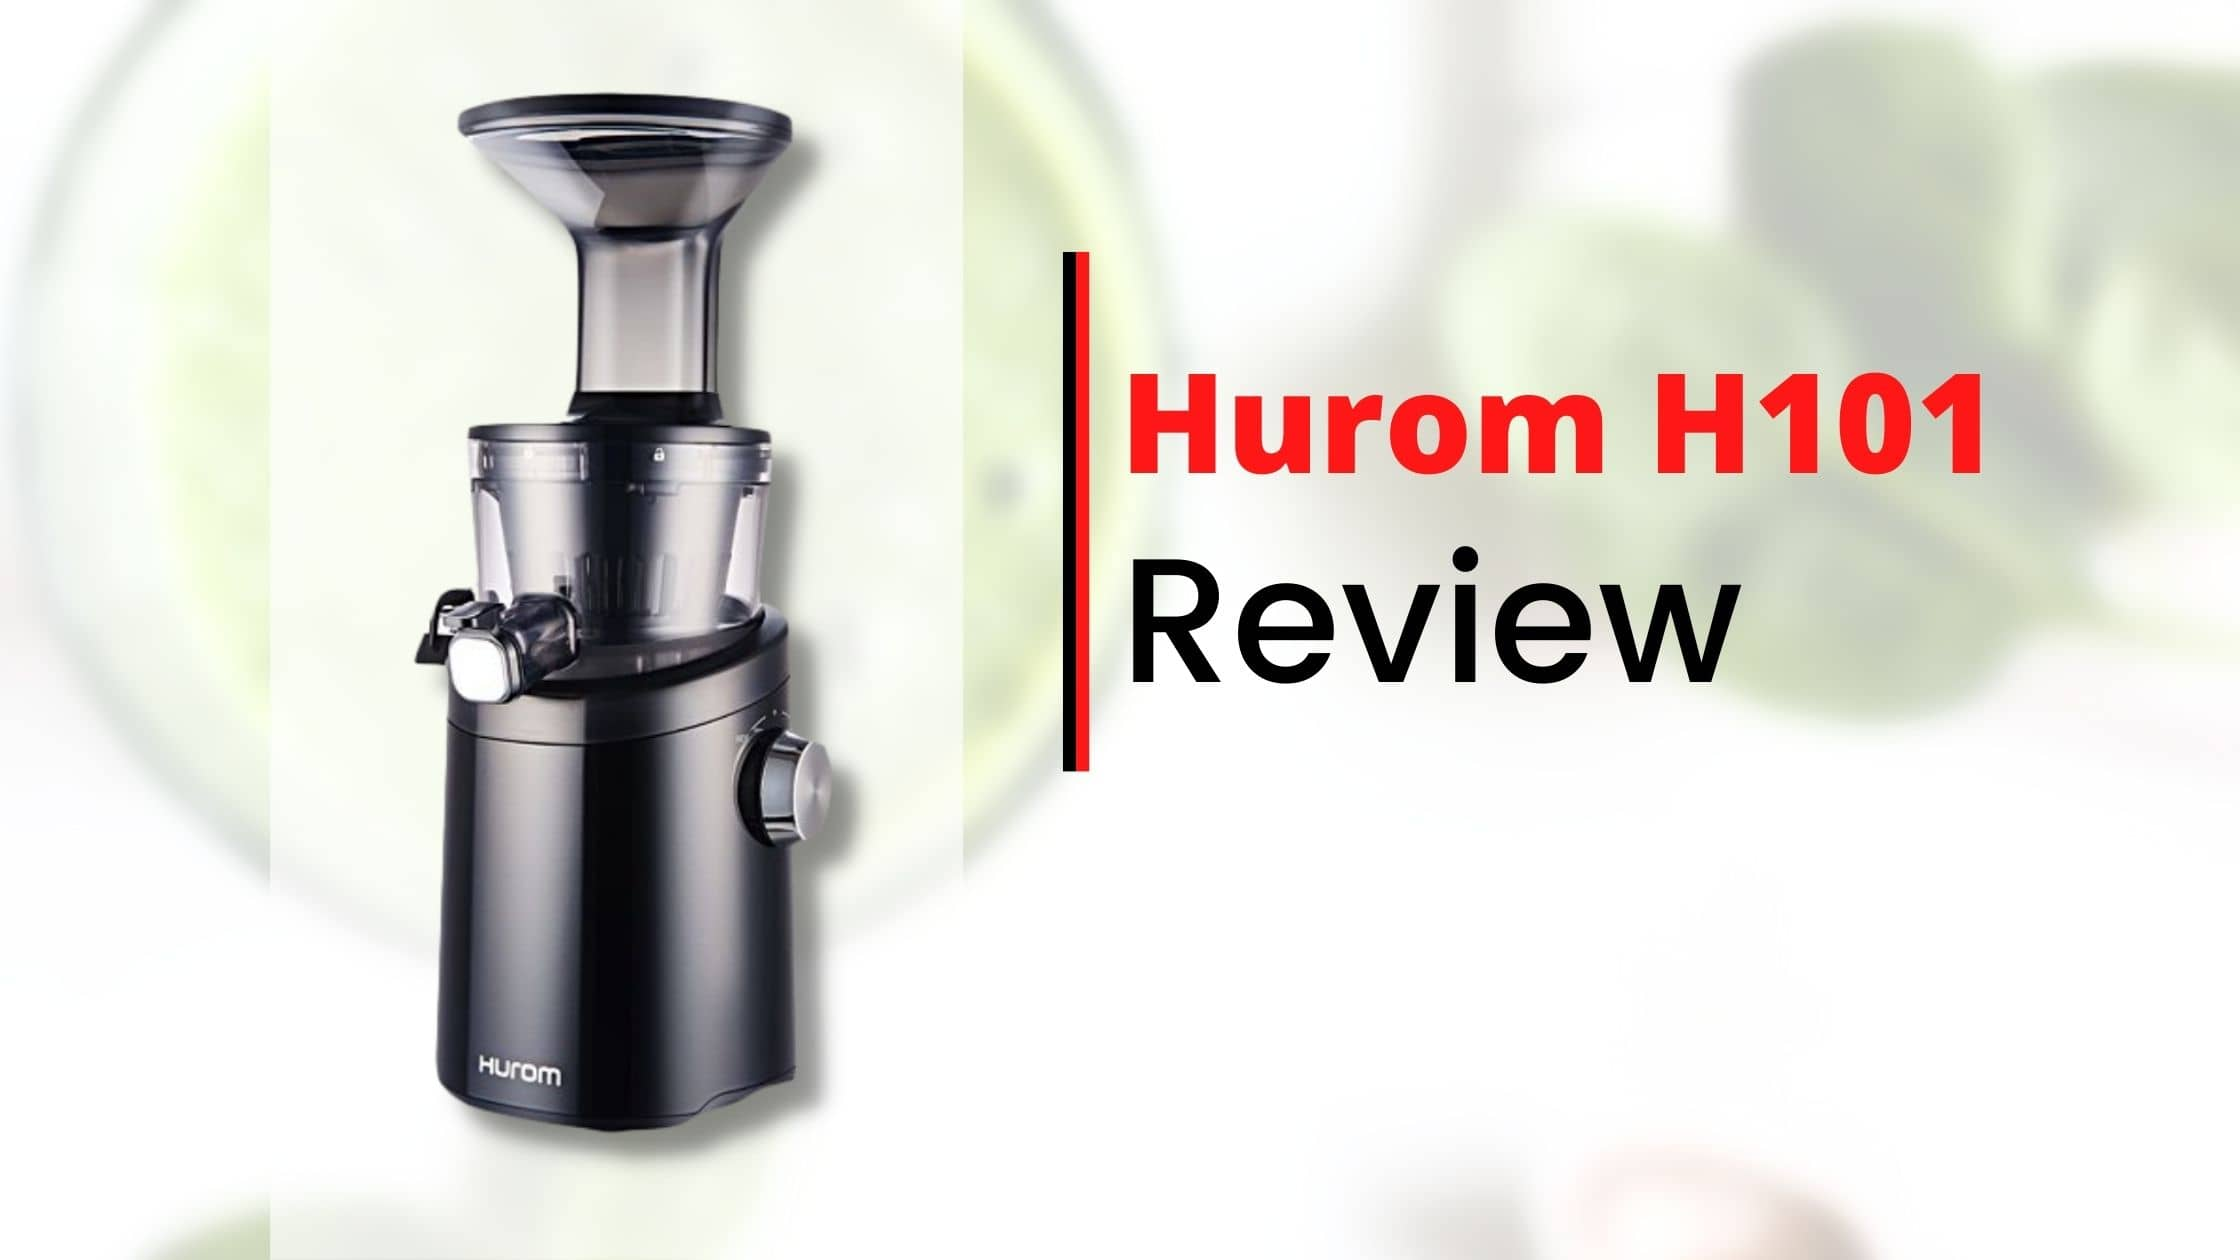 Hurom H101 Review